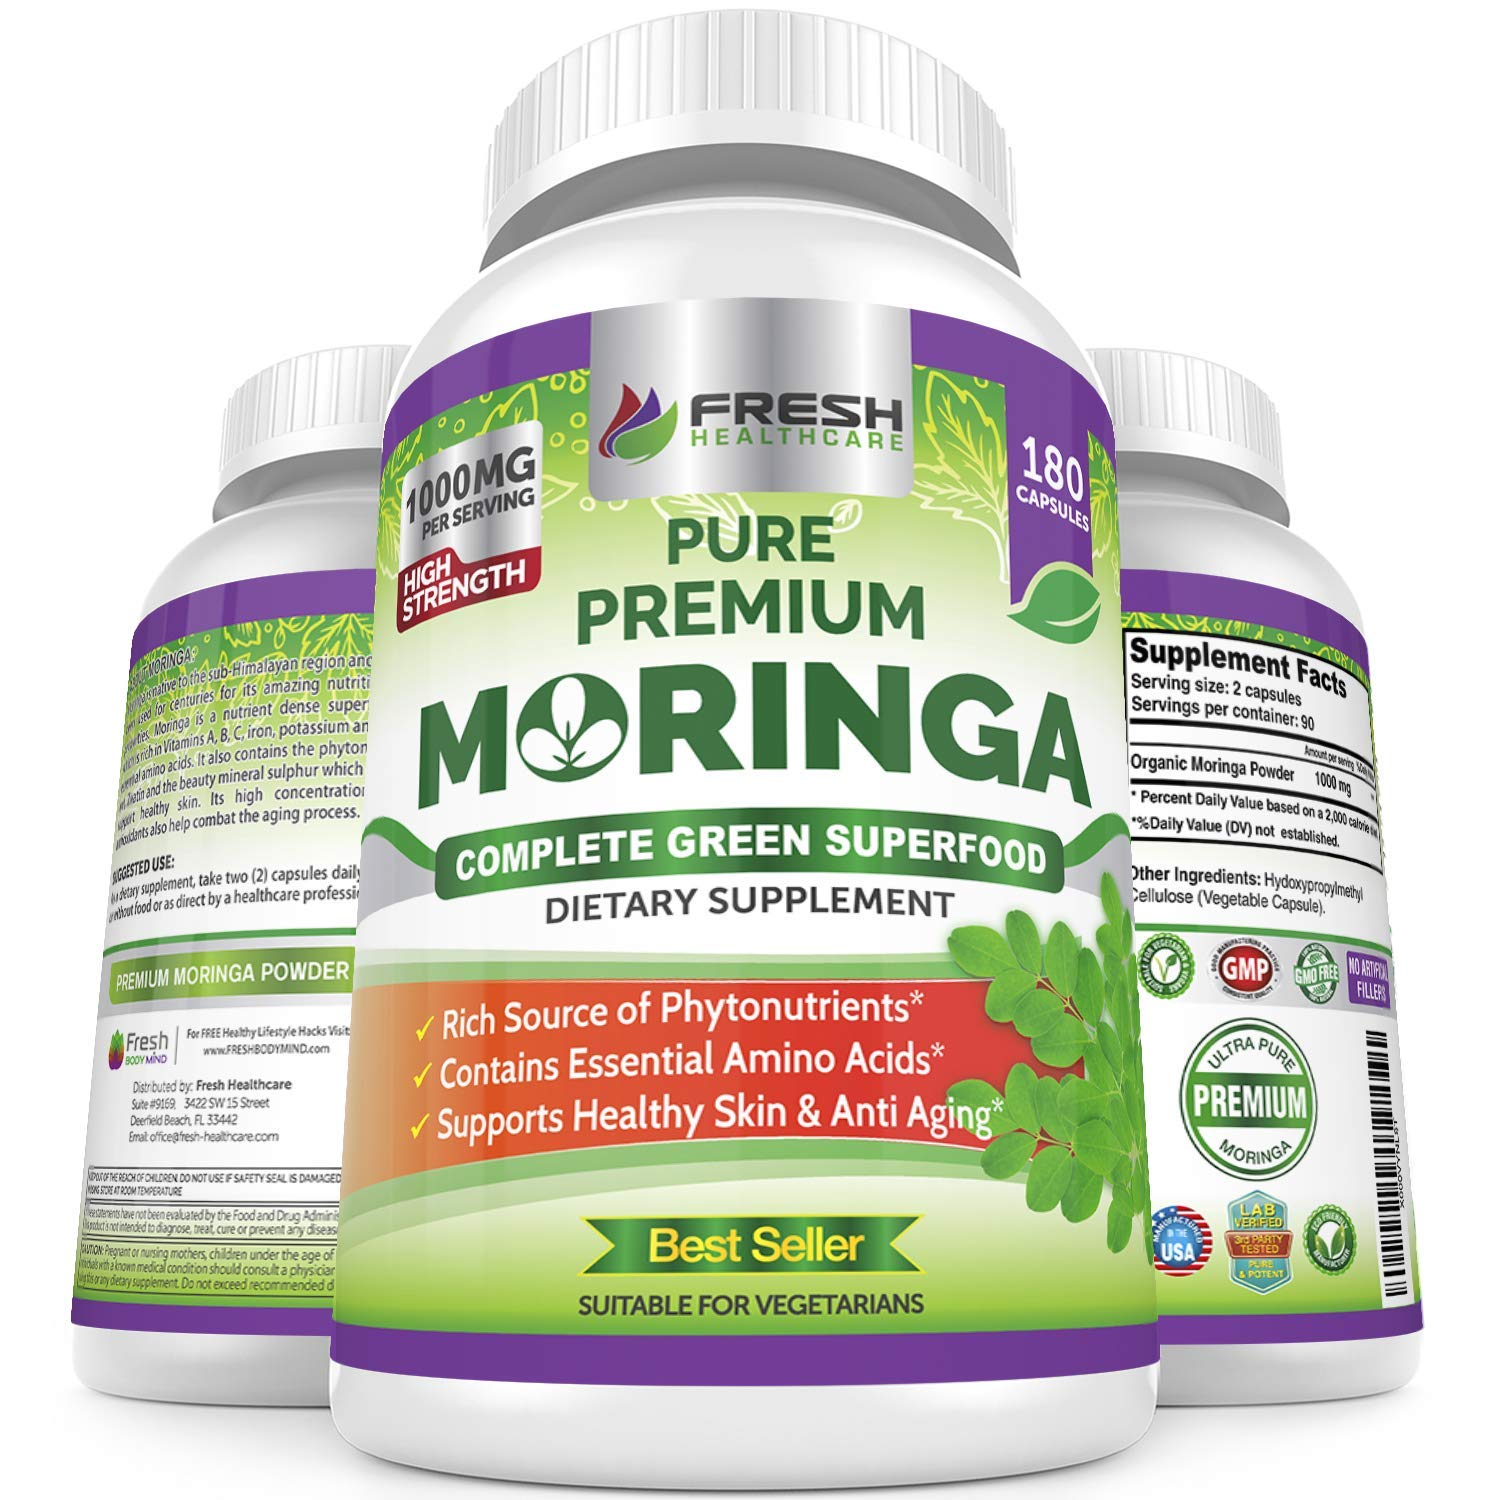 Organic Moringa 180 Capsules Supplement